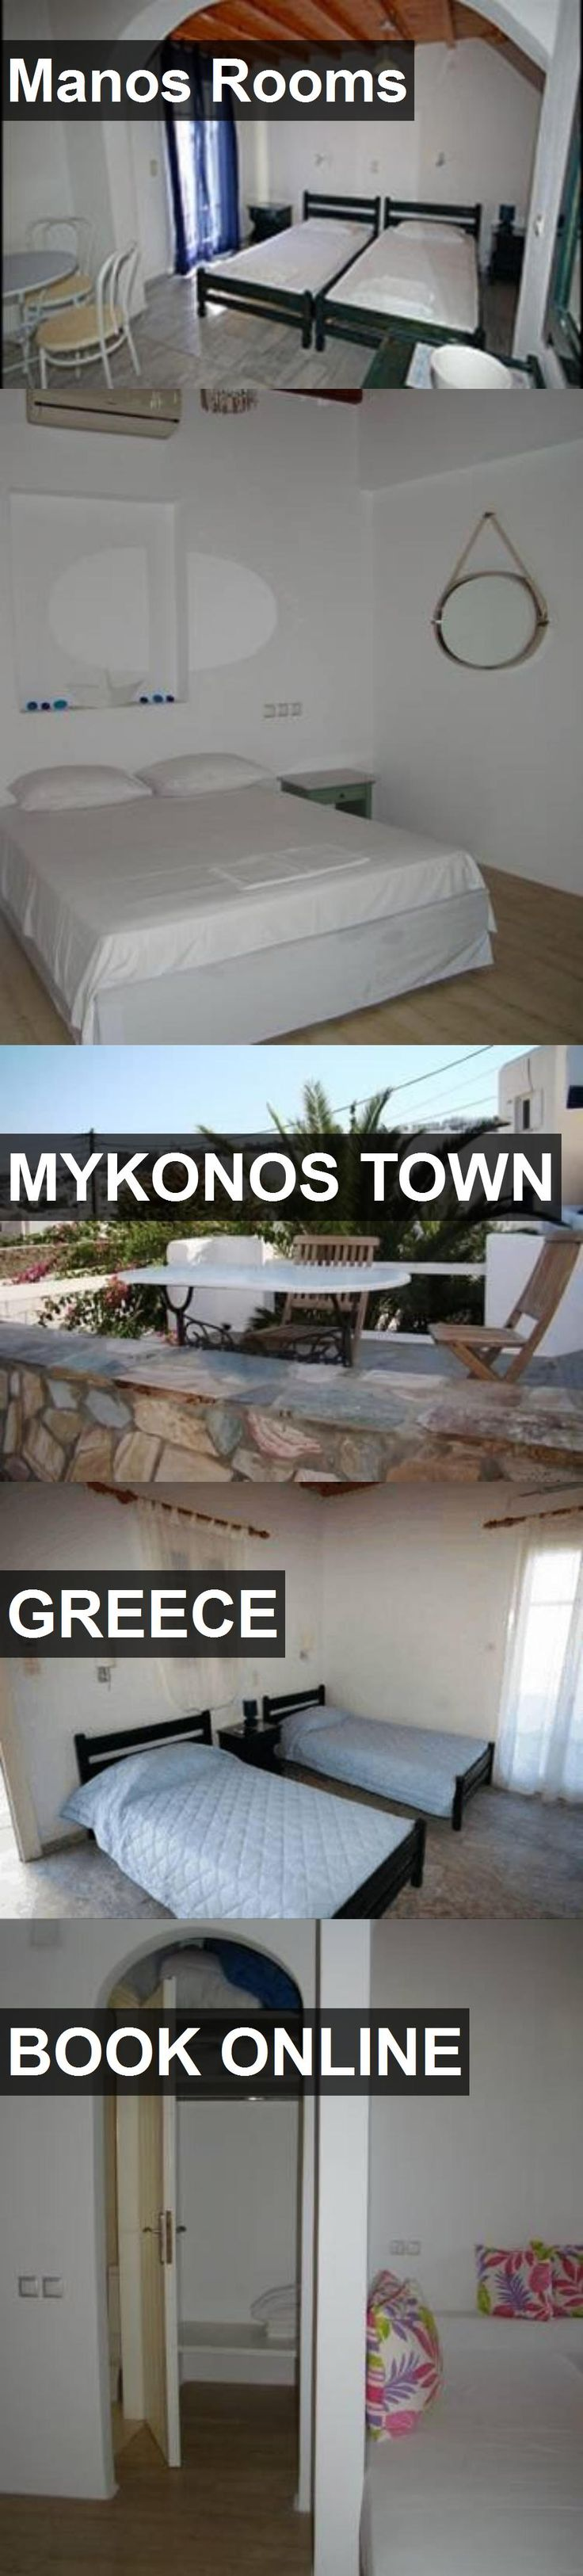 Hotel Manos Rooms in Mykonos Town, Greece. For more information, photos, reviews and best prices please follow the link. #Greece #MykonosTown #hotel #travel #vacation